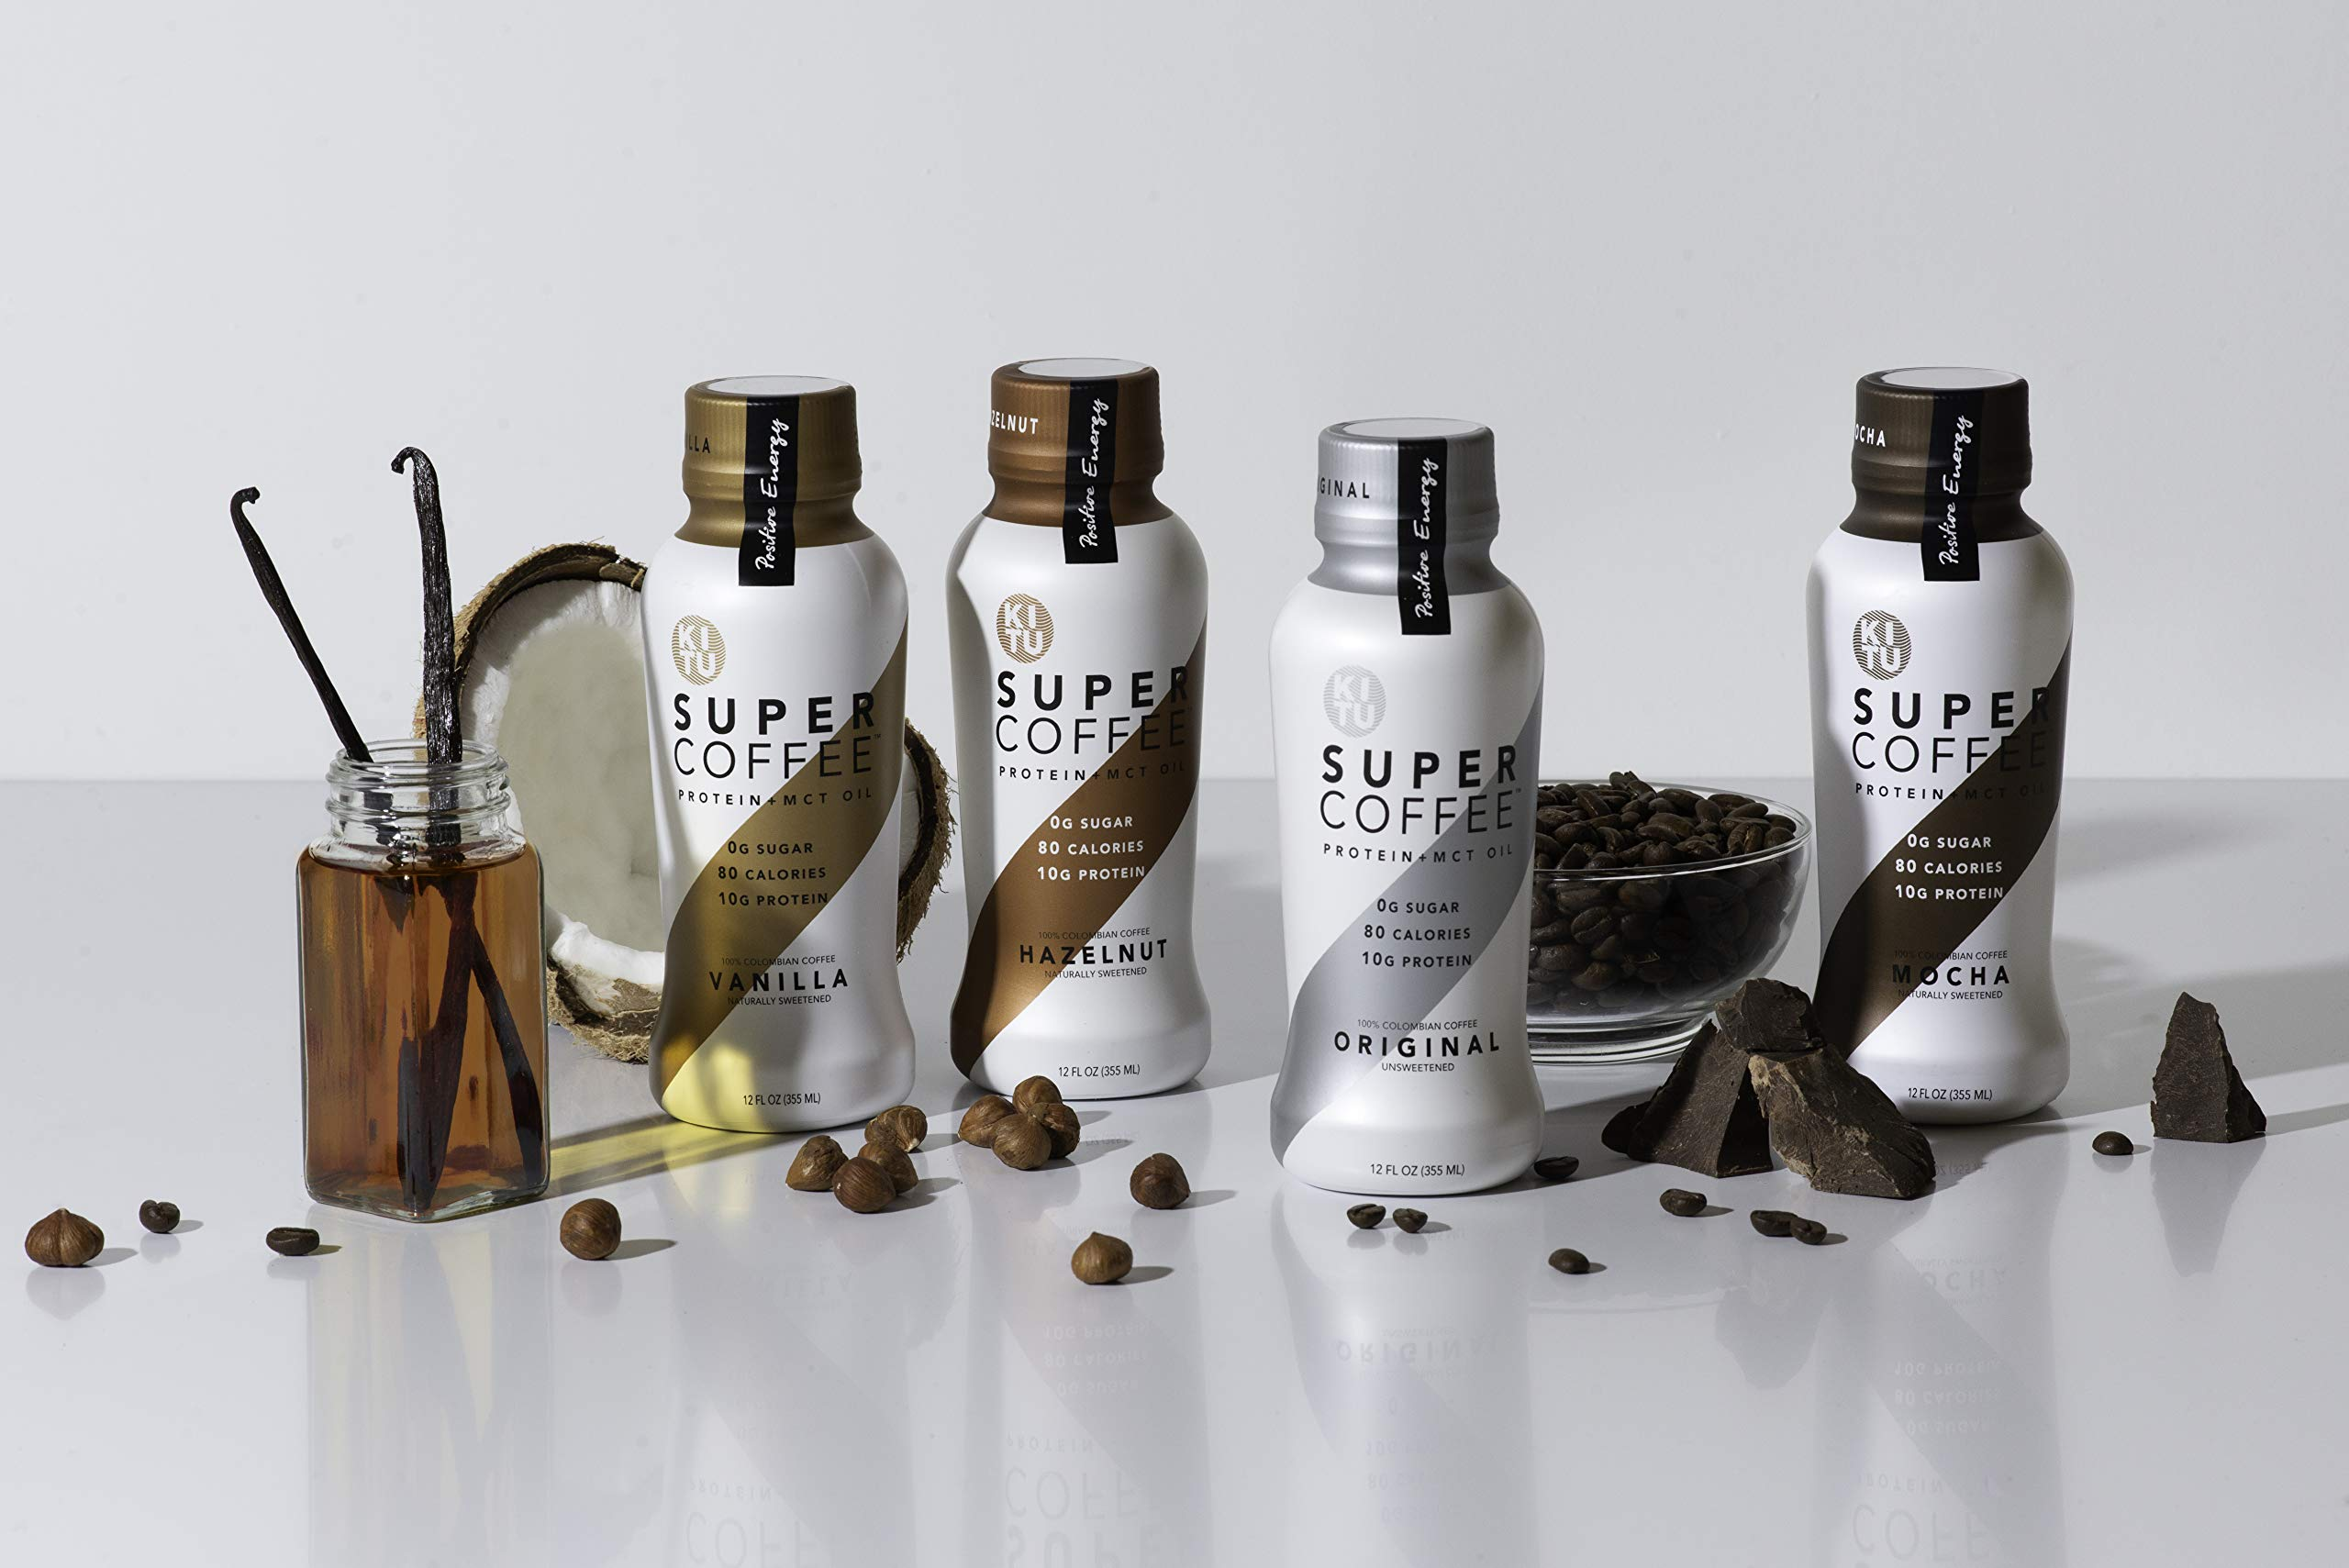 Kitu by Sunniva Super Coffee Sugar-Free Formula Variety Pack, 10g Protein, Keto Approved, Lactose Free, Soy Free, Gluten Free (3 each of Vanilla, Mocha, Hazelnut, and Original) by SUNNIVA SUPER COFFEE